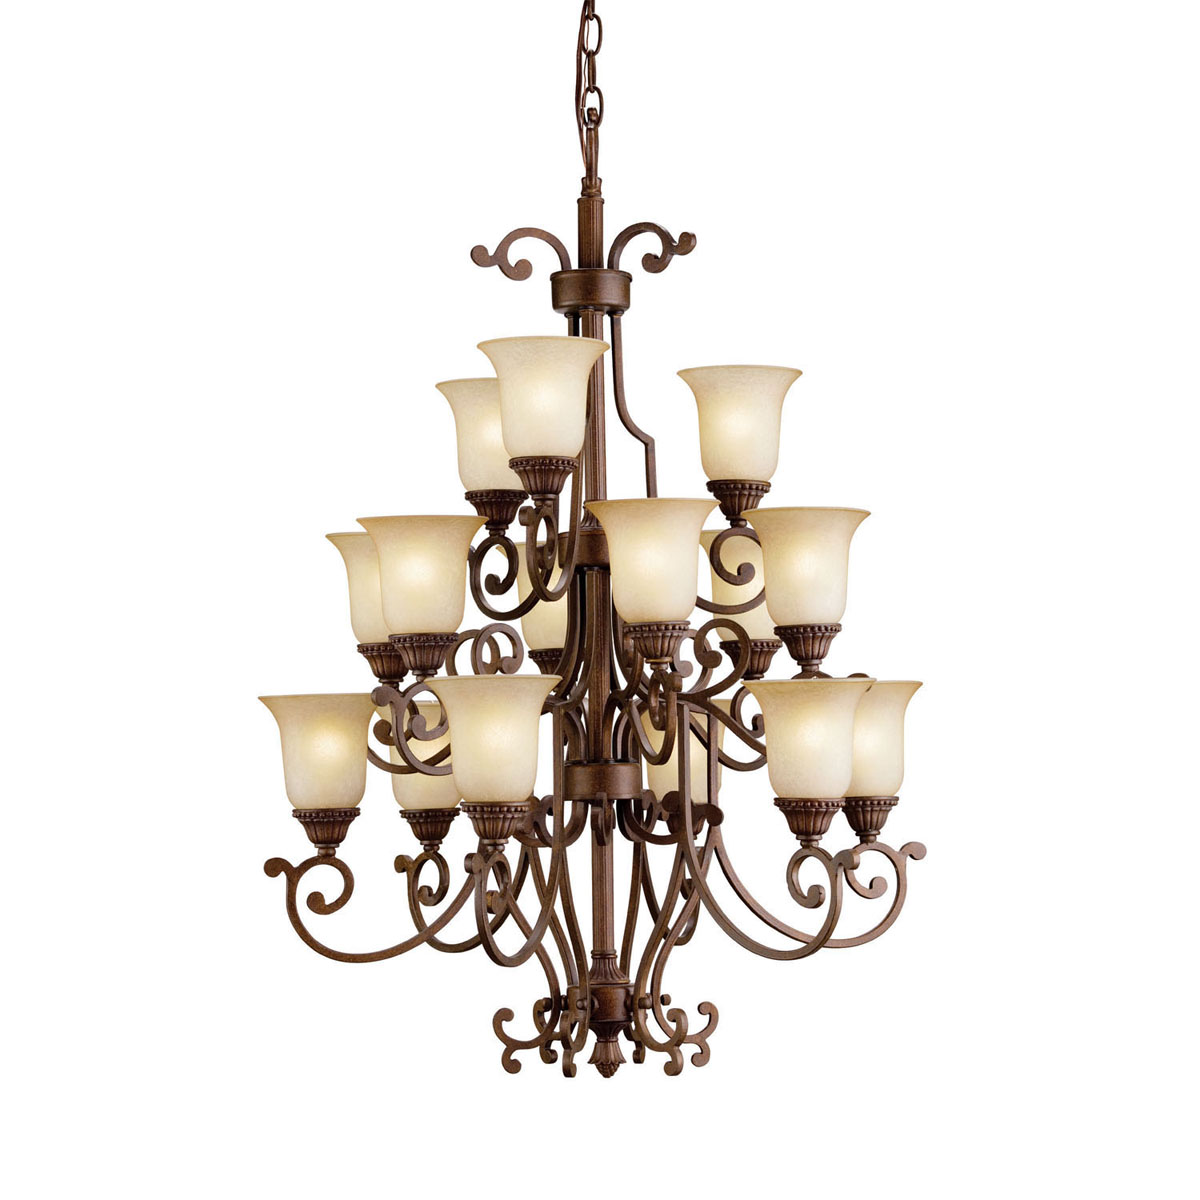 Kichler 2307TZG Larissa Collection Chandelier 15 Light in Tannery Bronze with Gold Accent